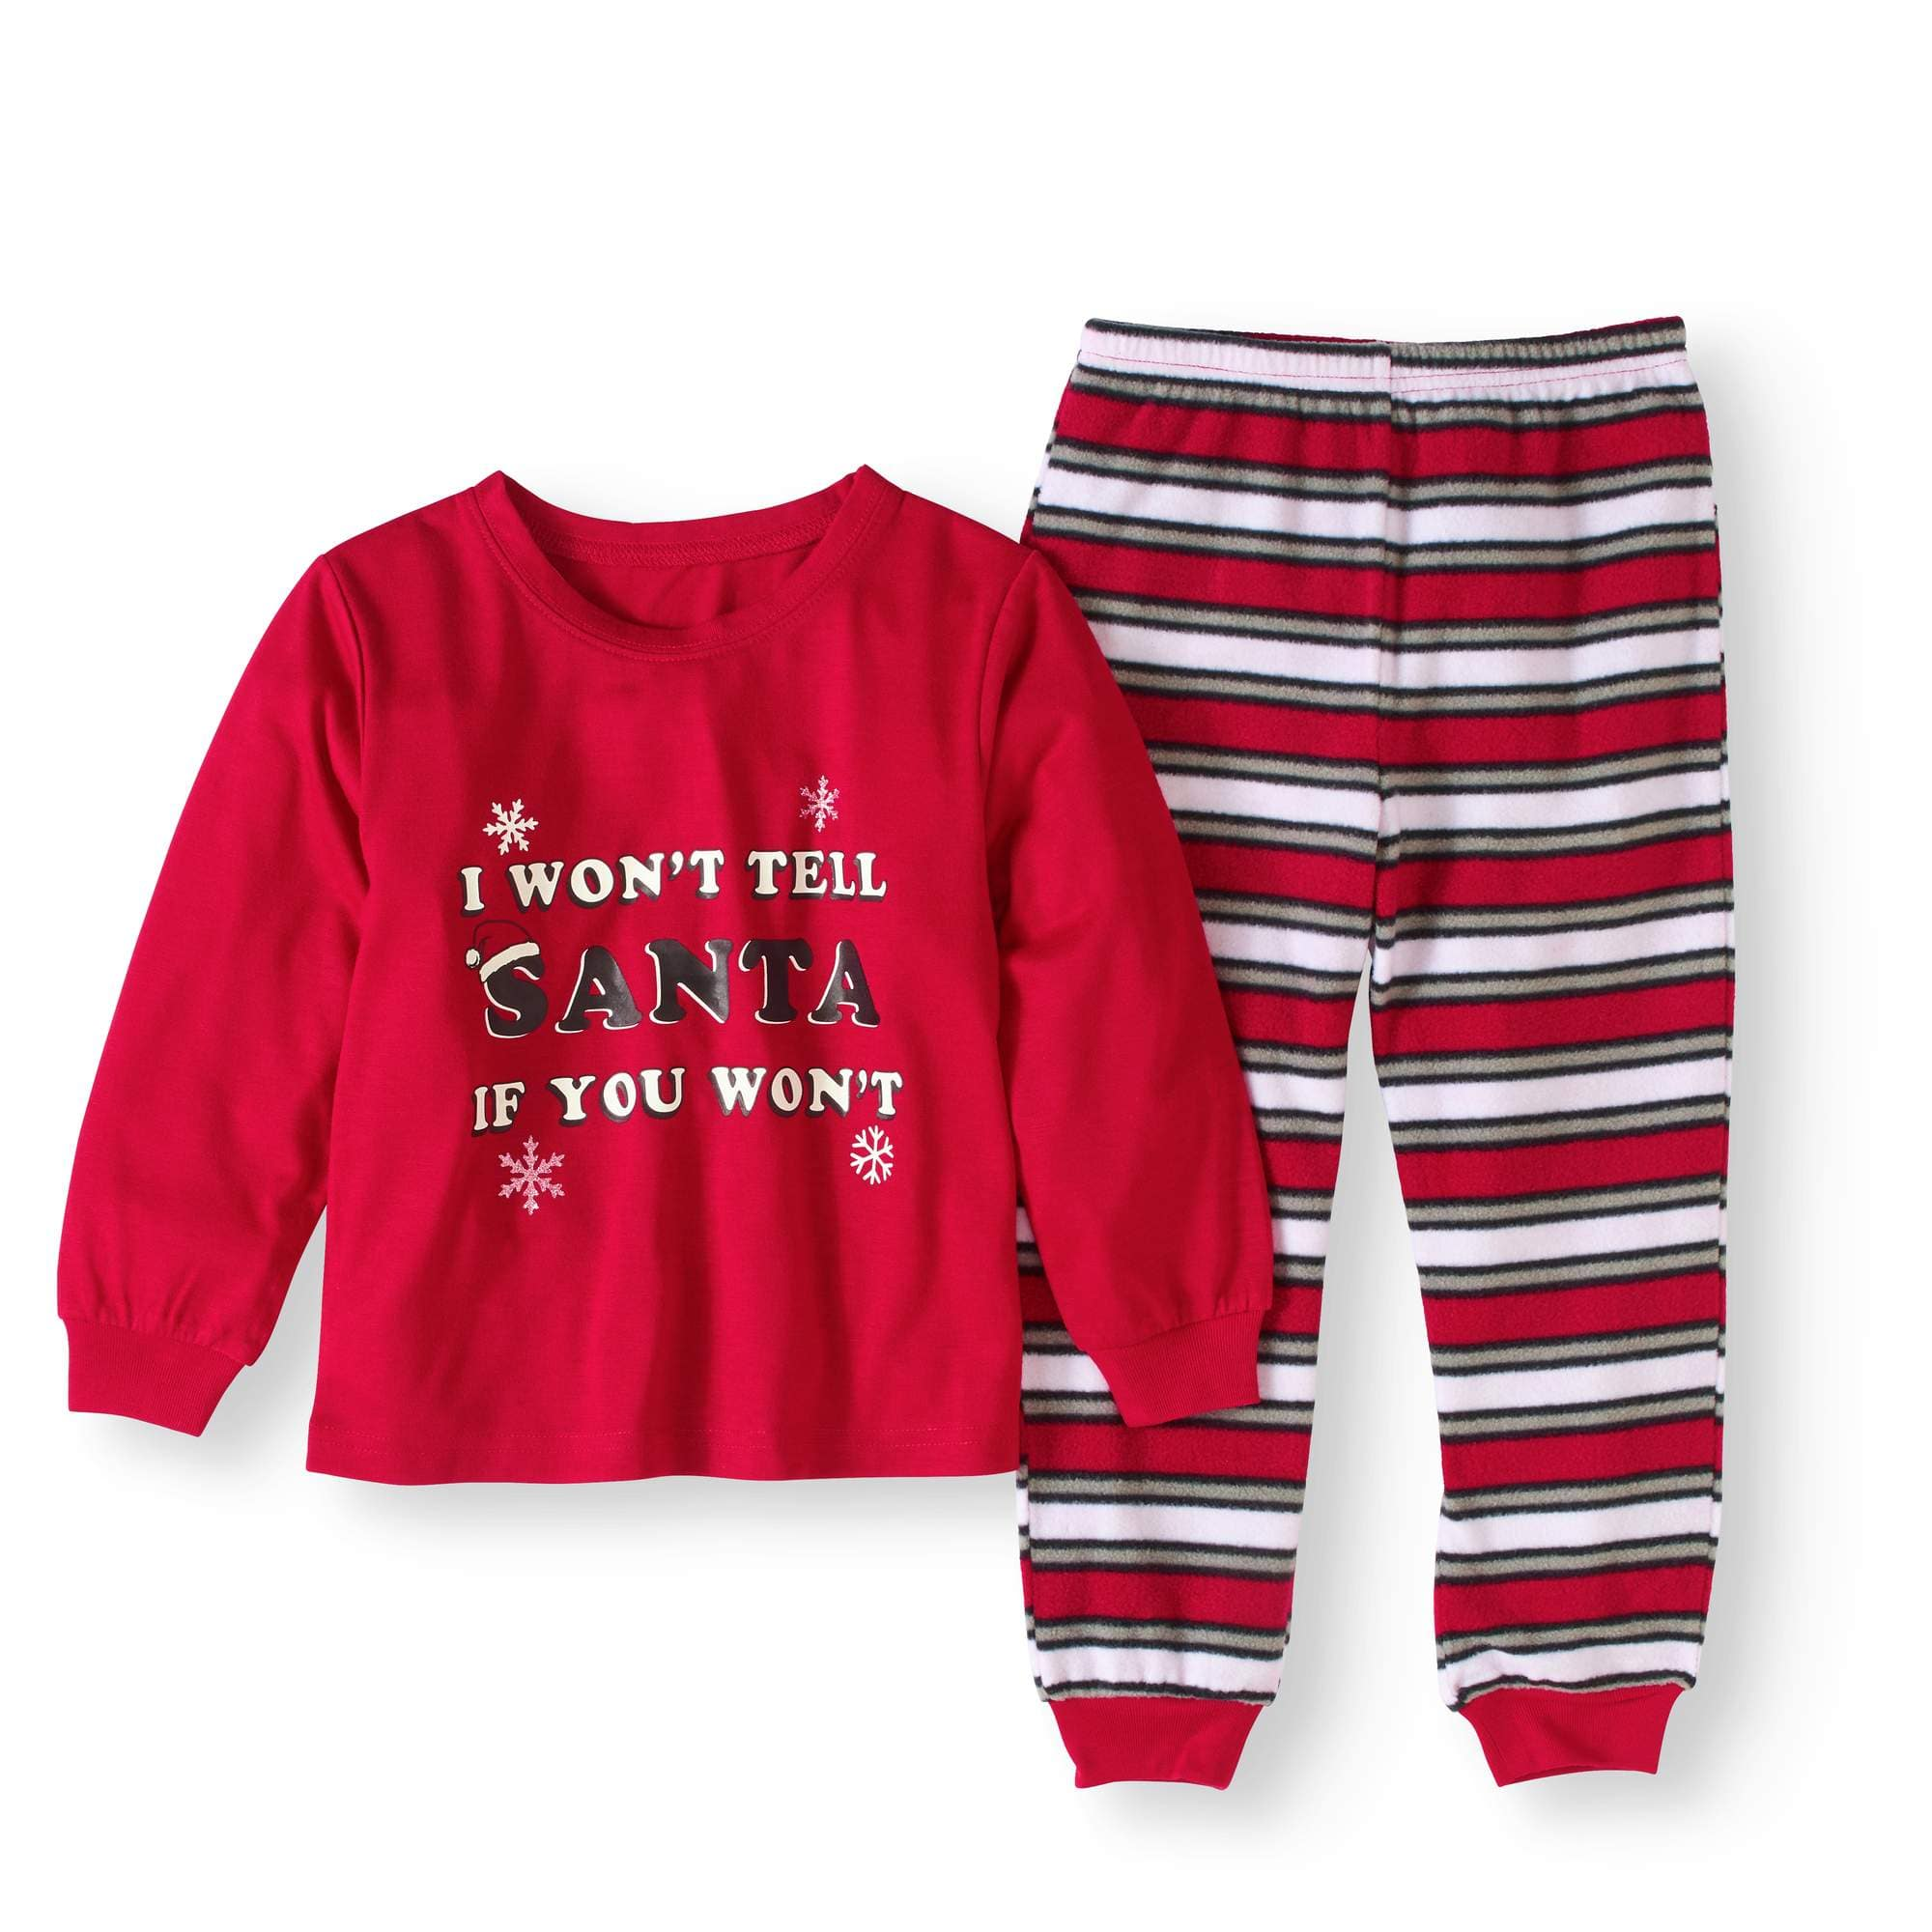 813900d35 2-Piece Baby Toddler Unisex Holiday Naughty or Nice Pajama Set ...